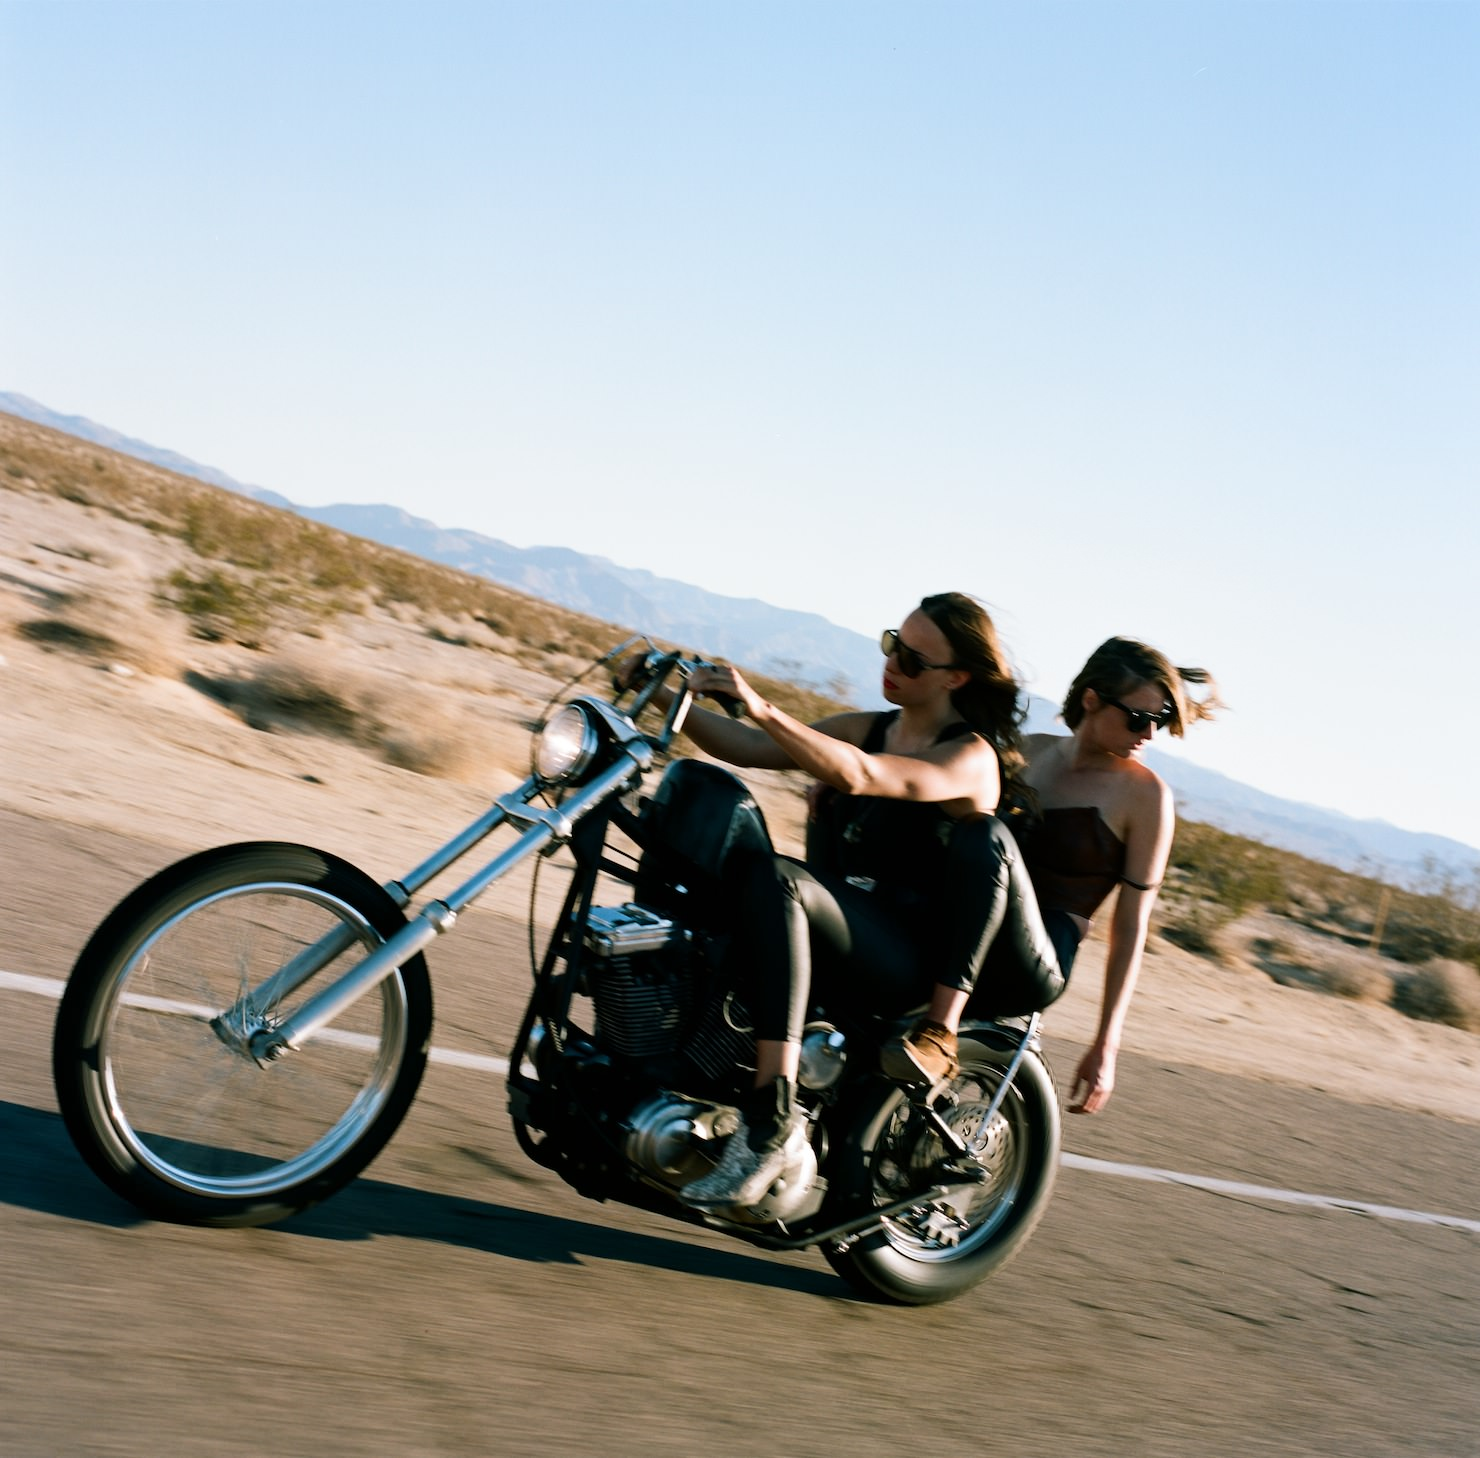 harley online dating Bikerkisscom is the first and largest biker dating site for biker singles, biker girls, biker boys, biker woman, biker guys, biker babes, biker chicks and all riders of harley-davidson, yamaha, honda, ducati, kawasaki, suzuki, gold wing, bmw, triumph, bsa, indian motorcycles, choppers.